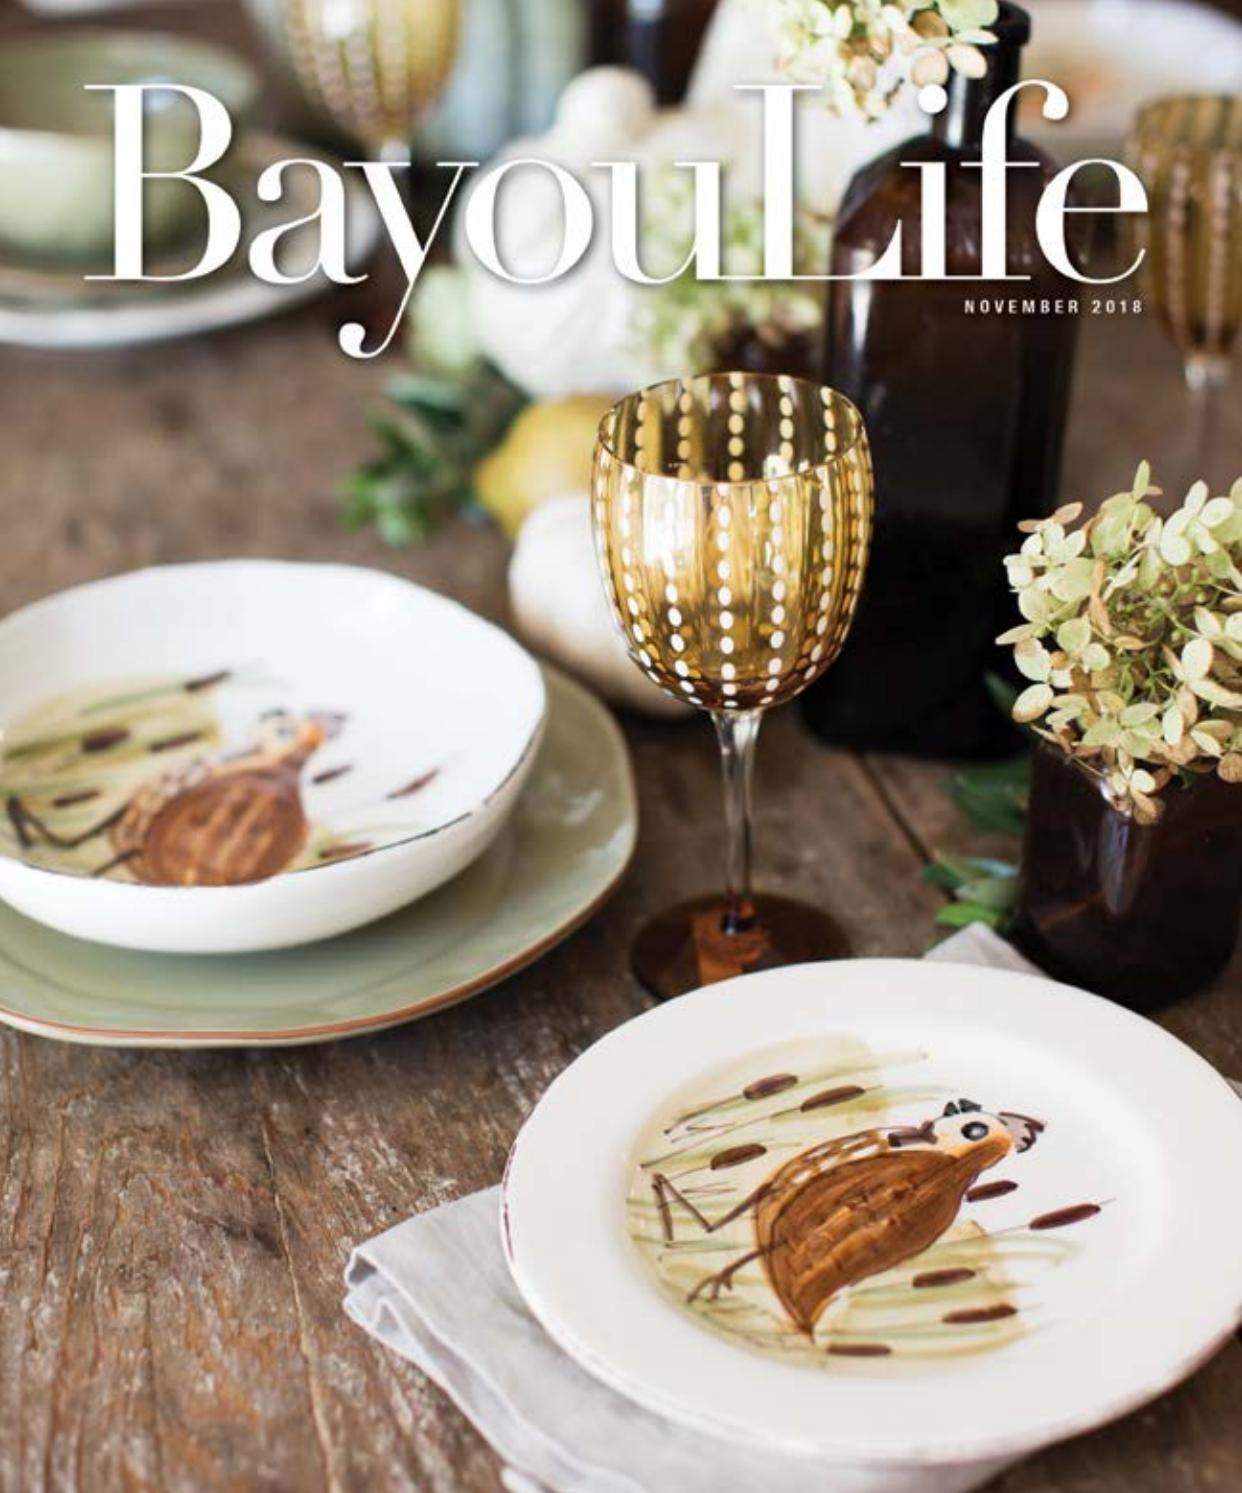 Cuisine Royale Brightness Bayoulife November 2018